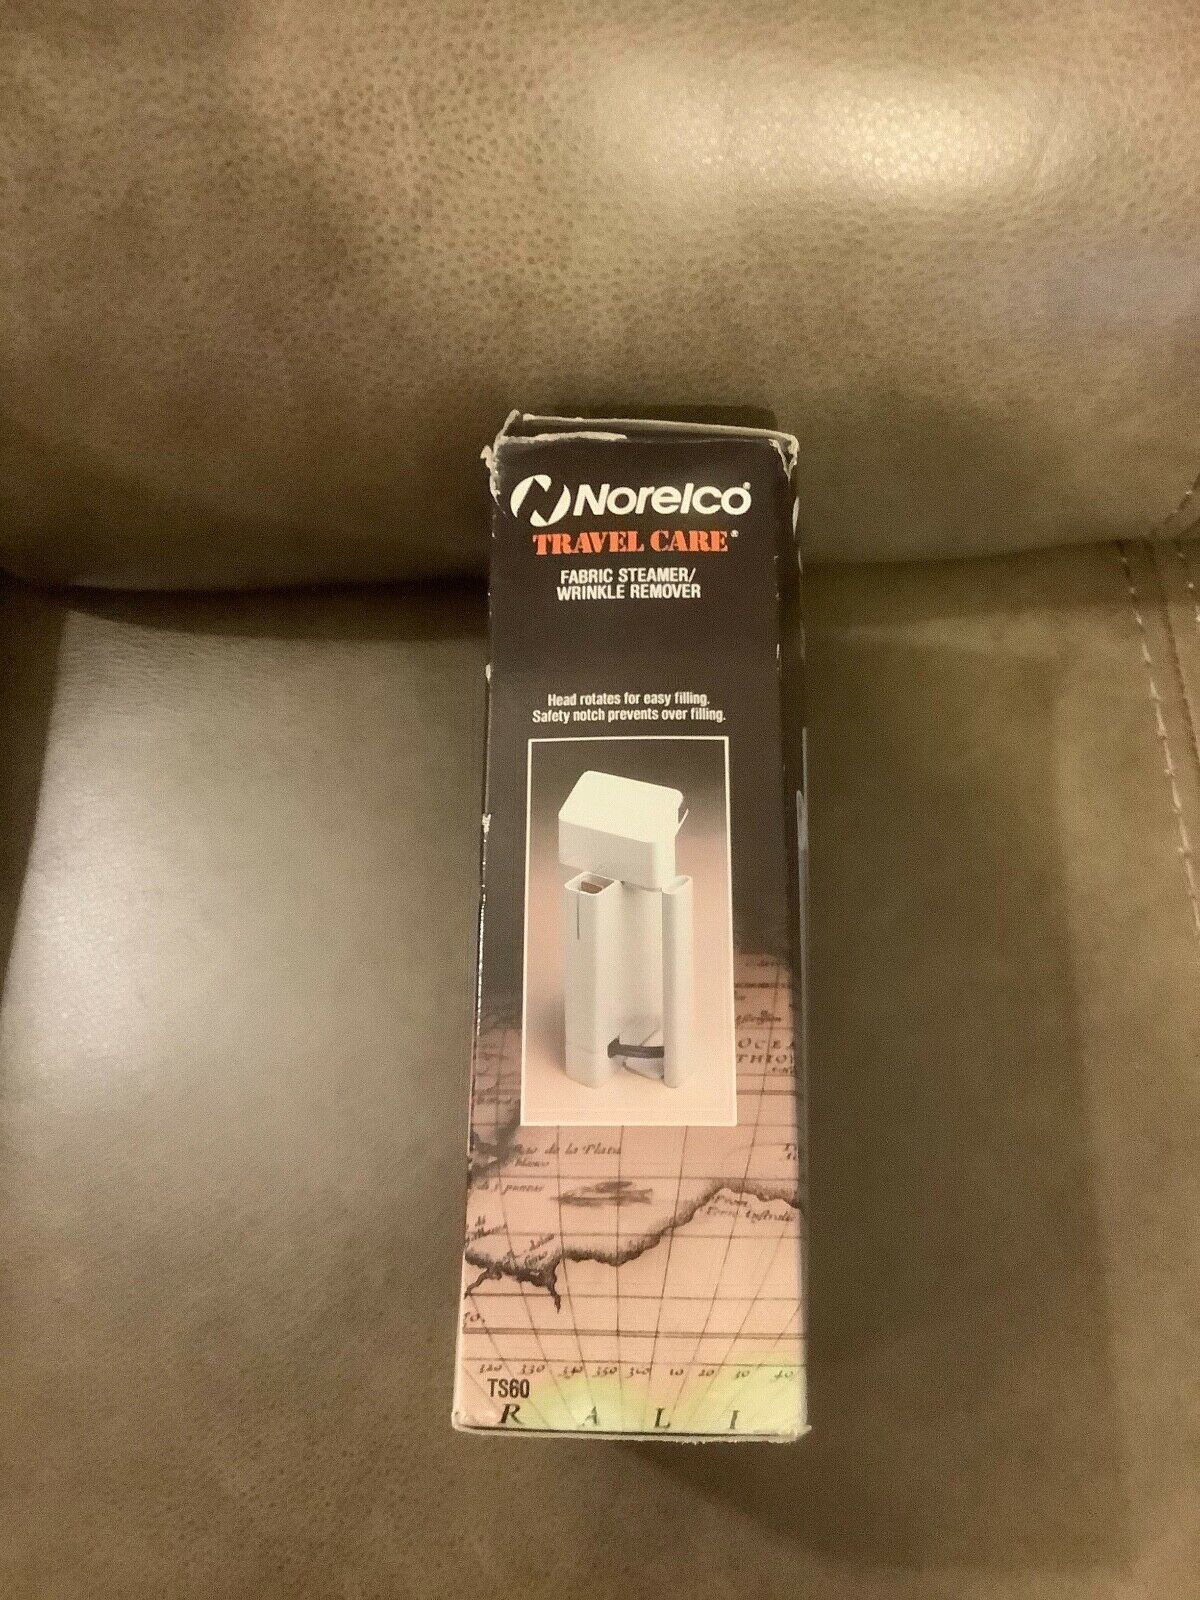 NORELCO TRAVEL CARE FABRIC STEAMER/WRINKLE REMOVER - $3.99